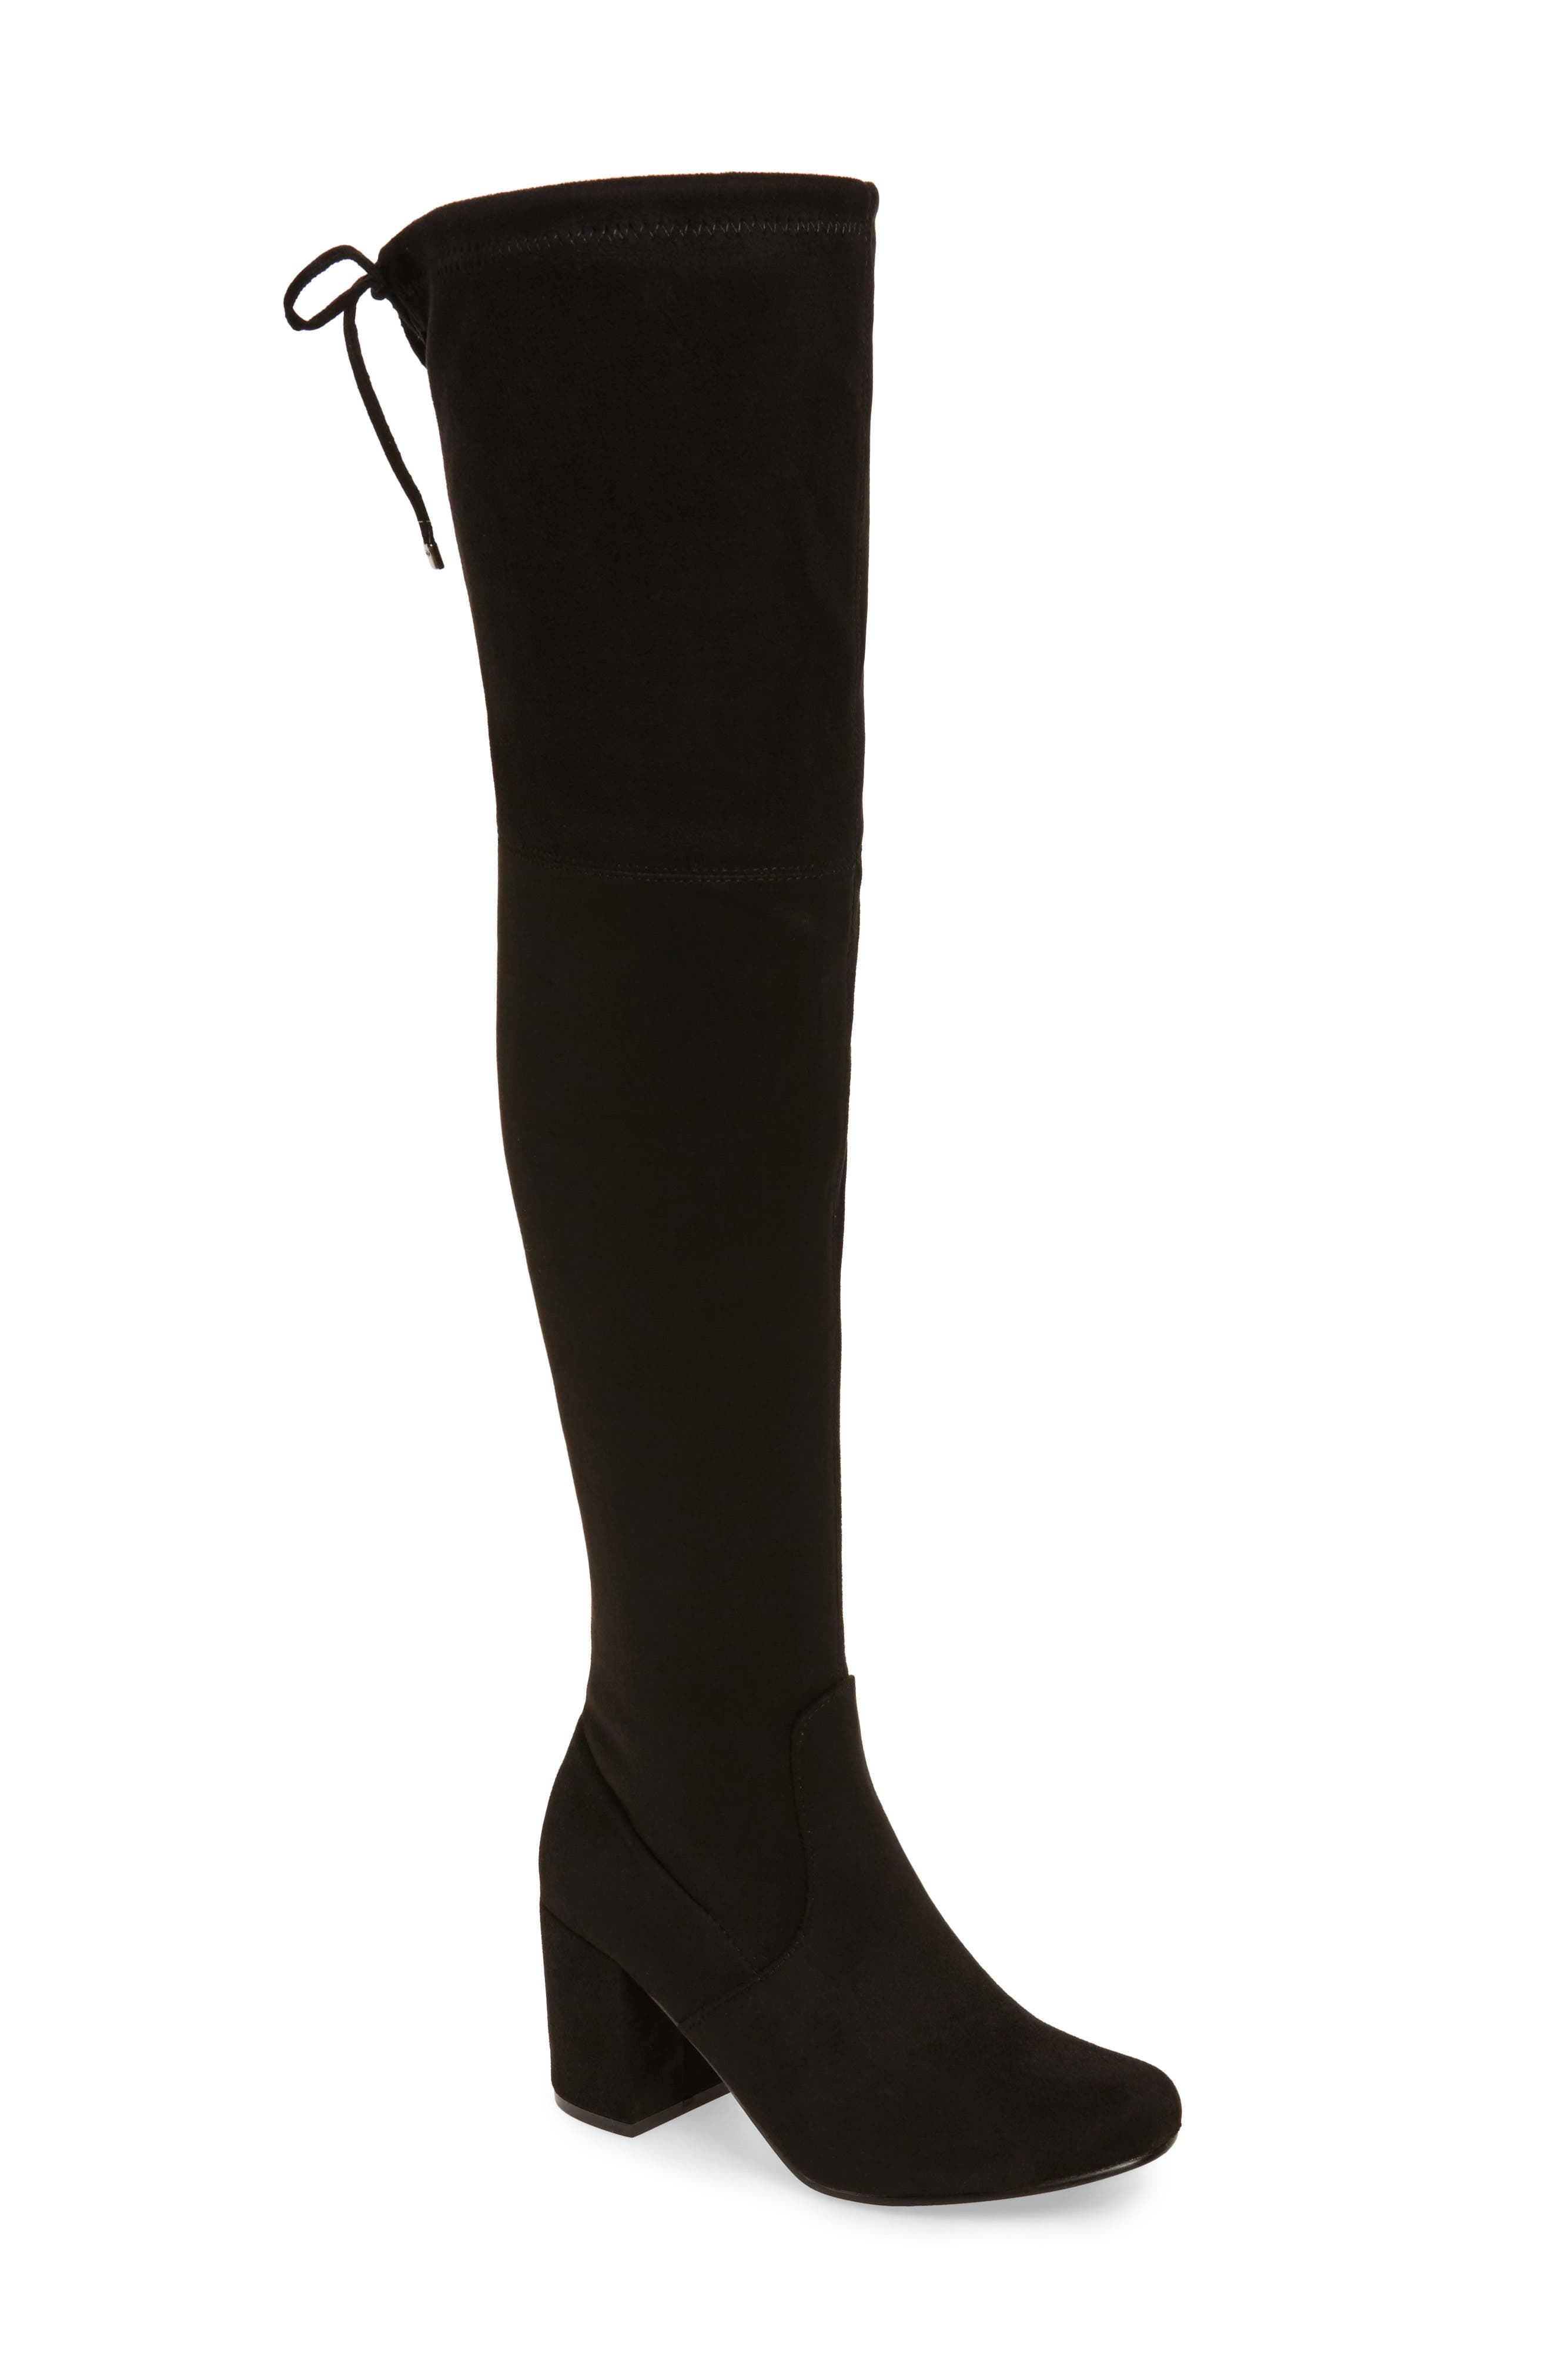 Heartbeat Over the Knee Boot,                         Main,                         color, 001